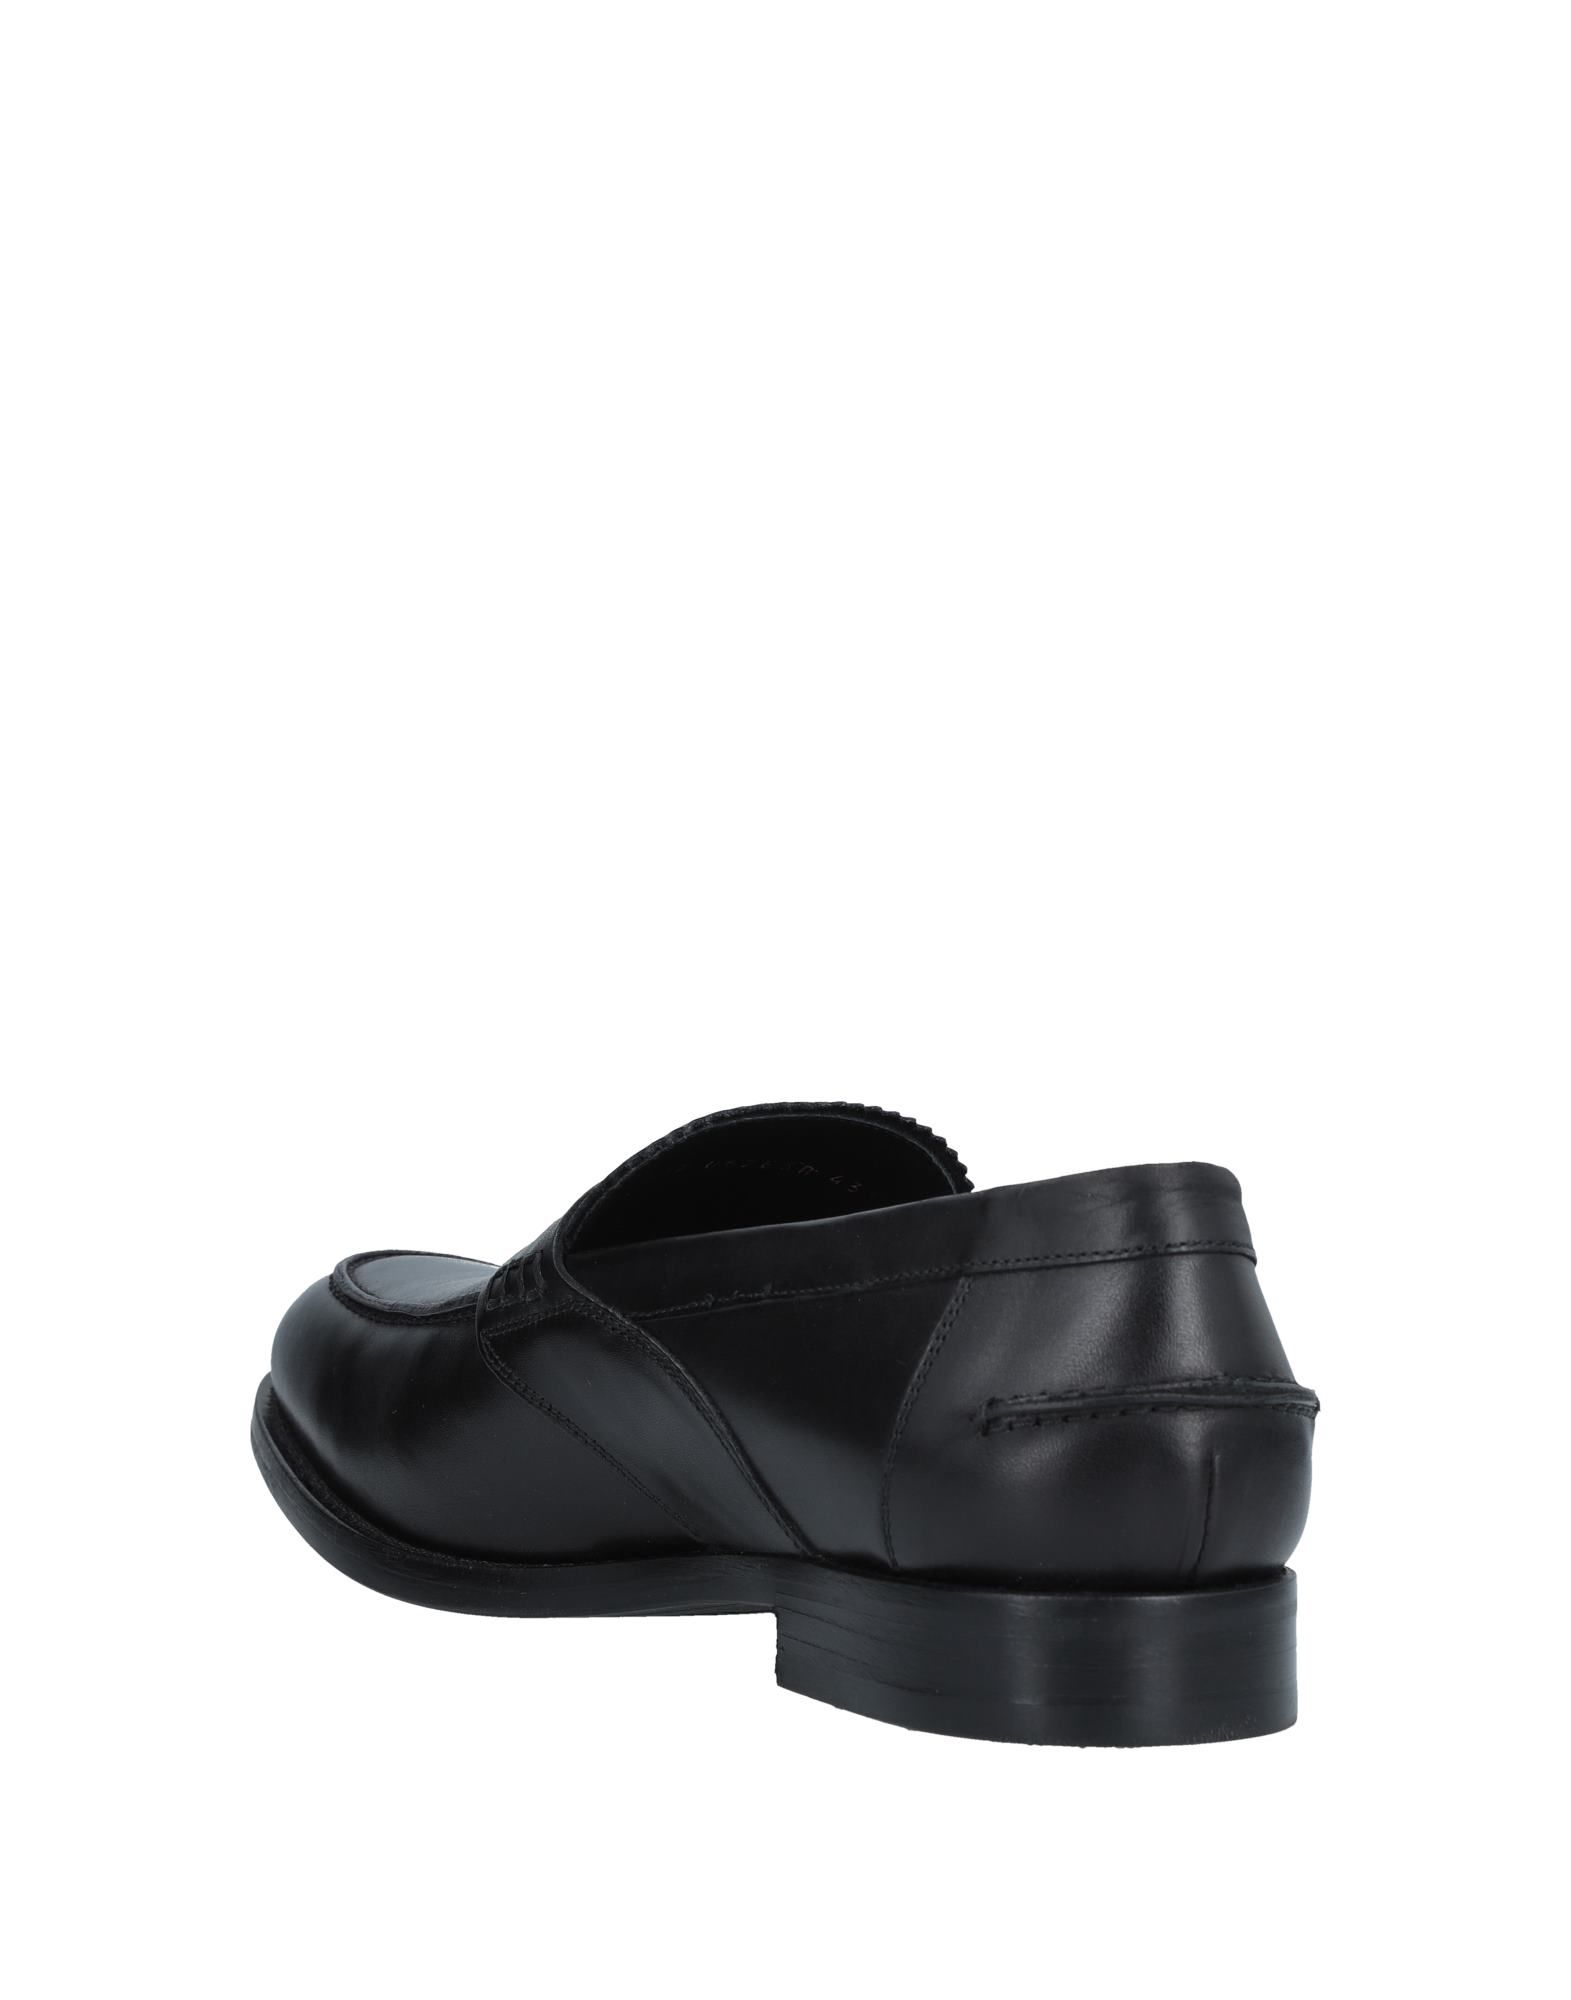 Geox Geox Geox Loafers - Men Geox Loafers online on  Canada - 11540212GM 806730